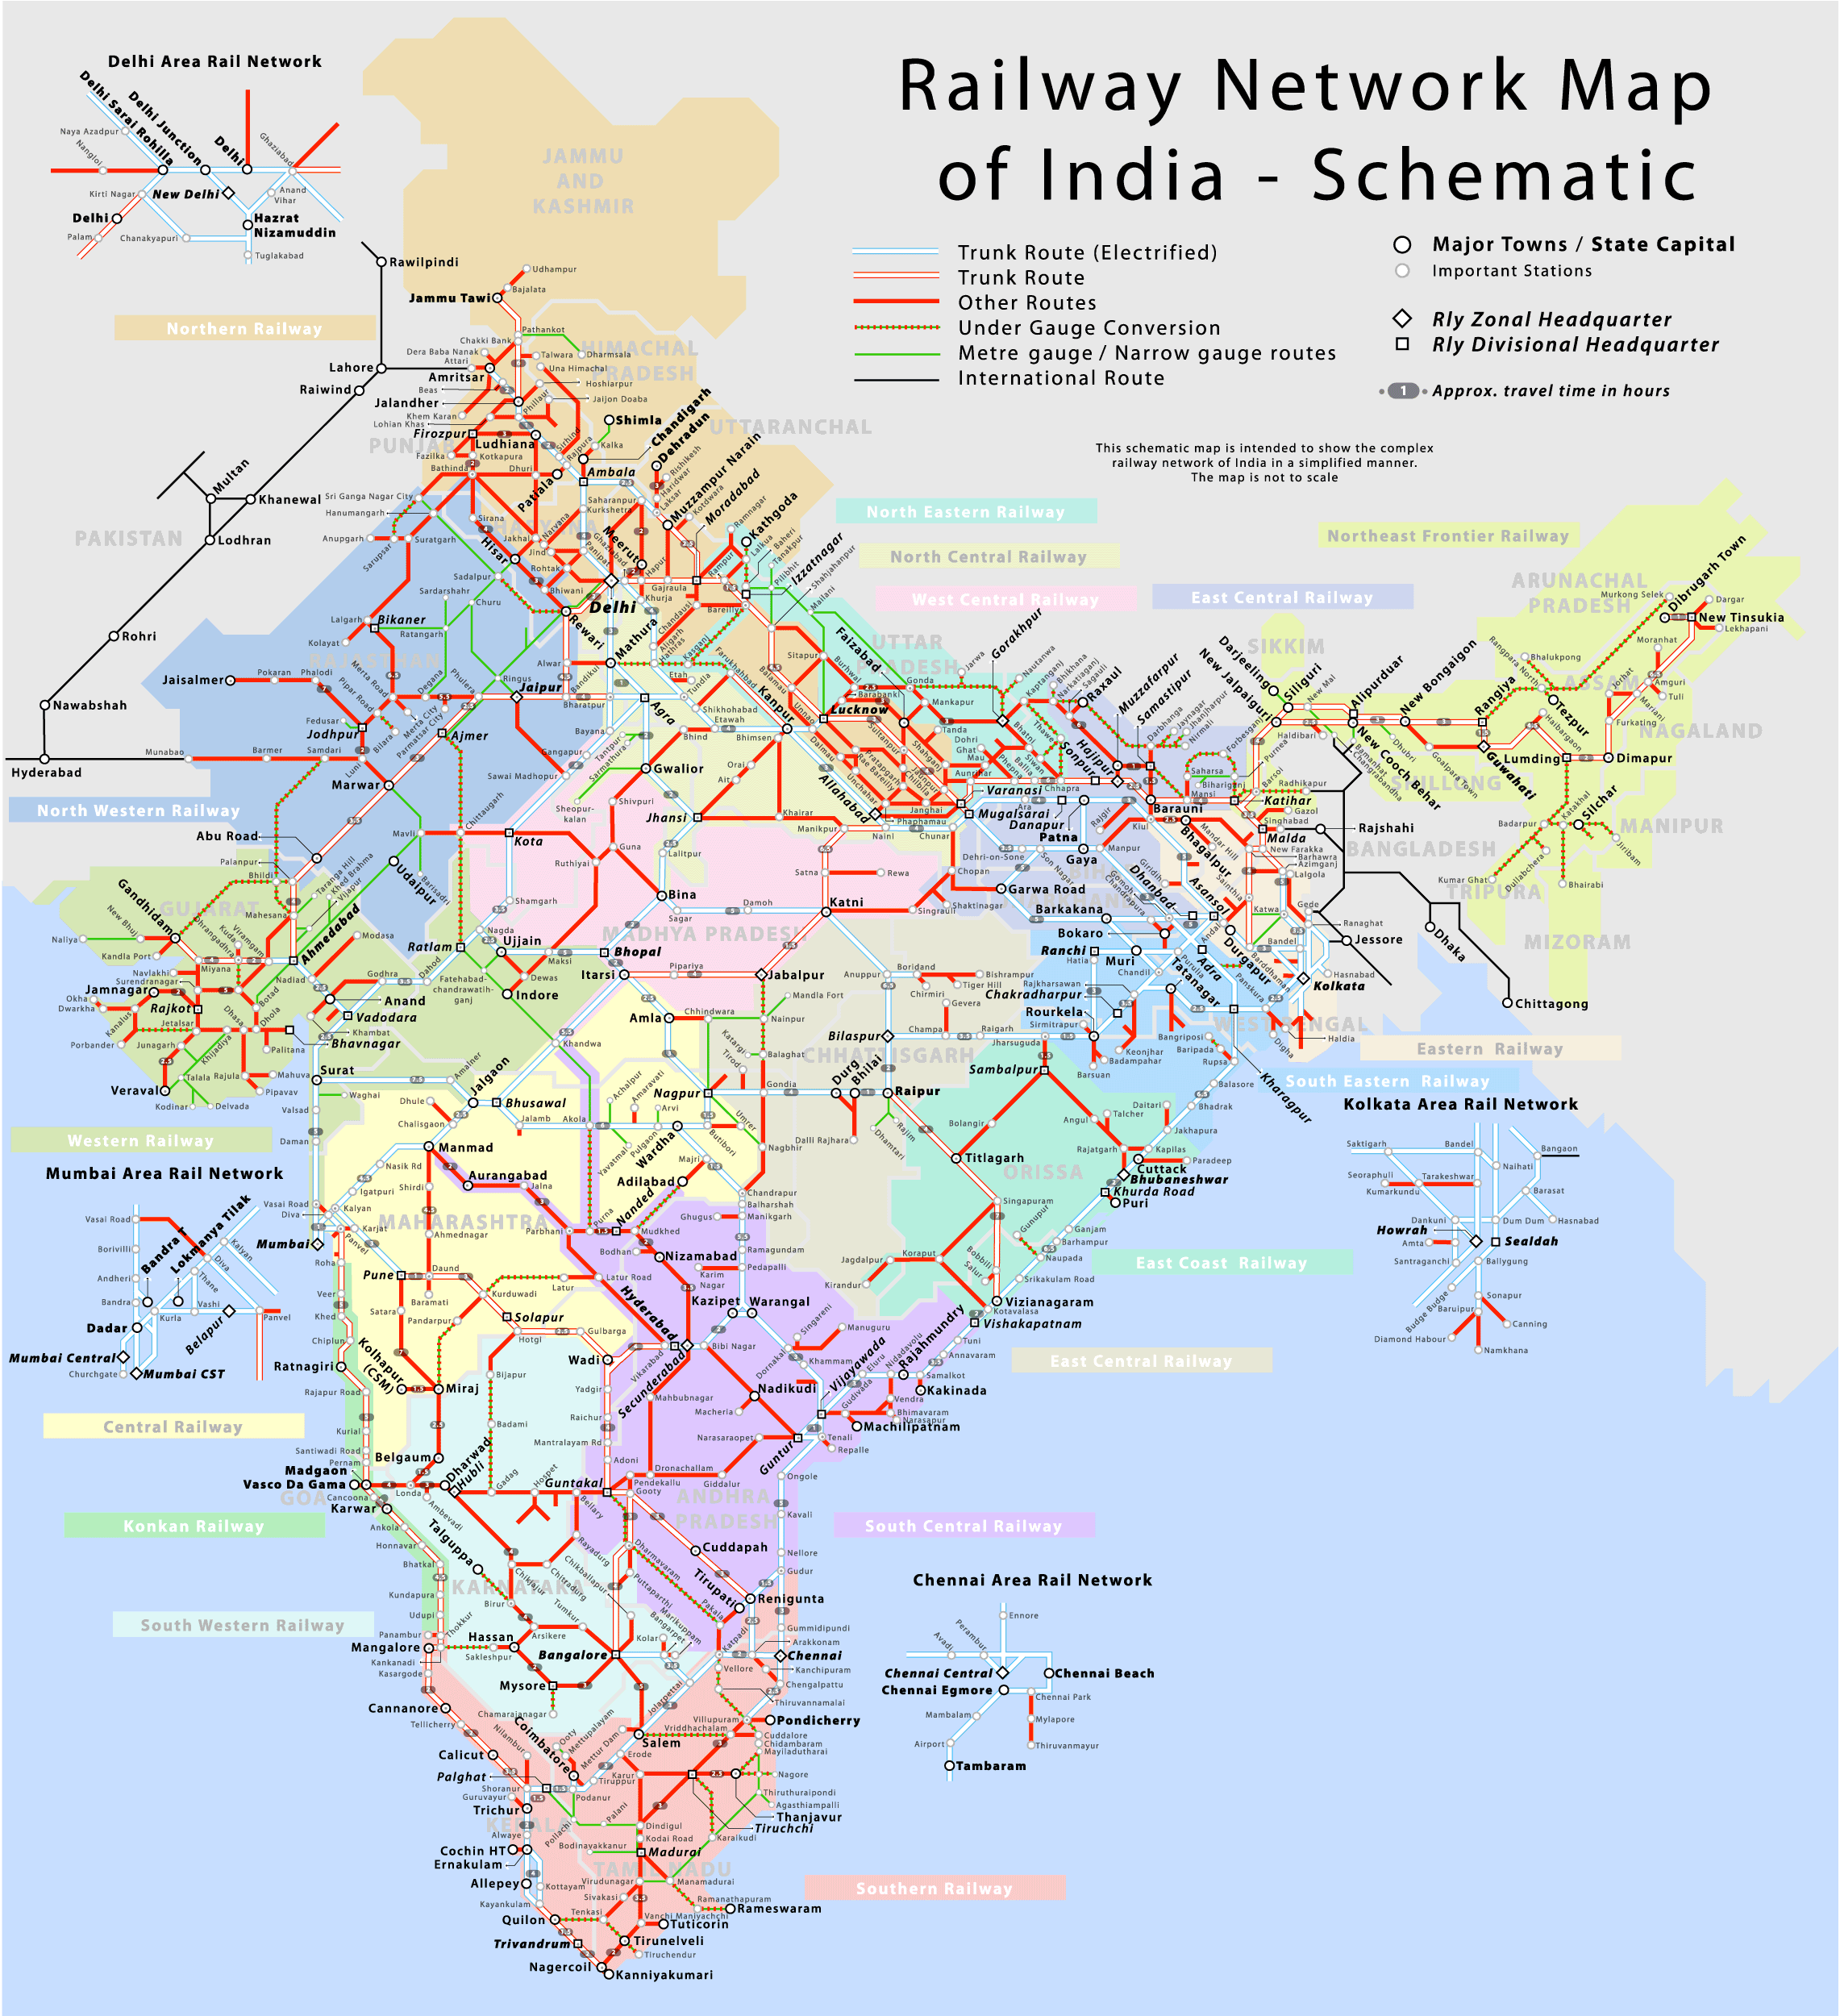 India Railway Network Schematic Map See map details From indiamike.com